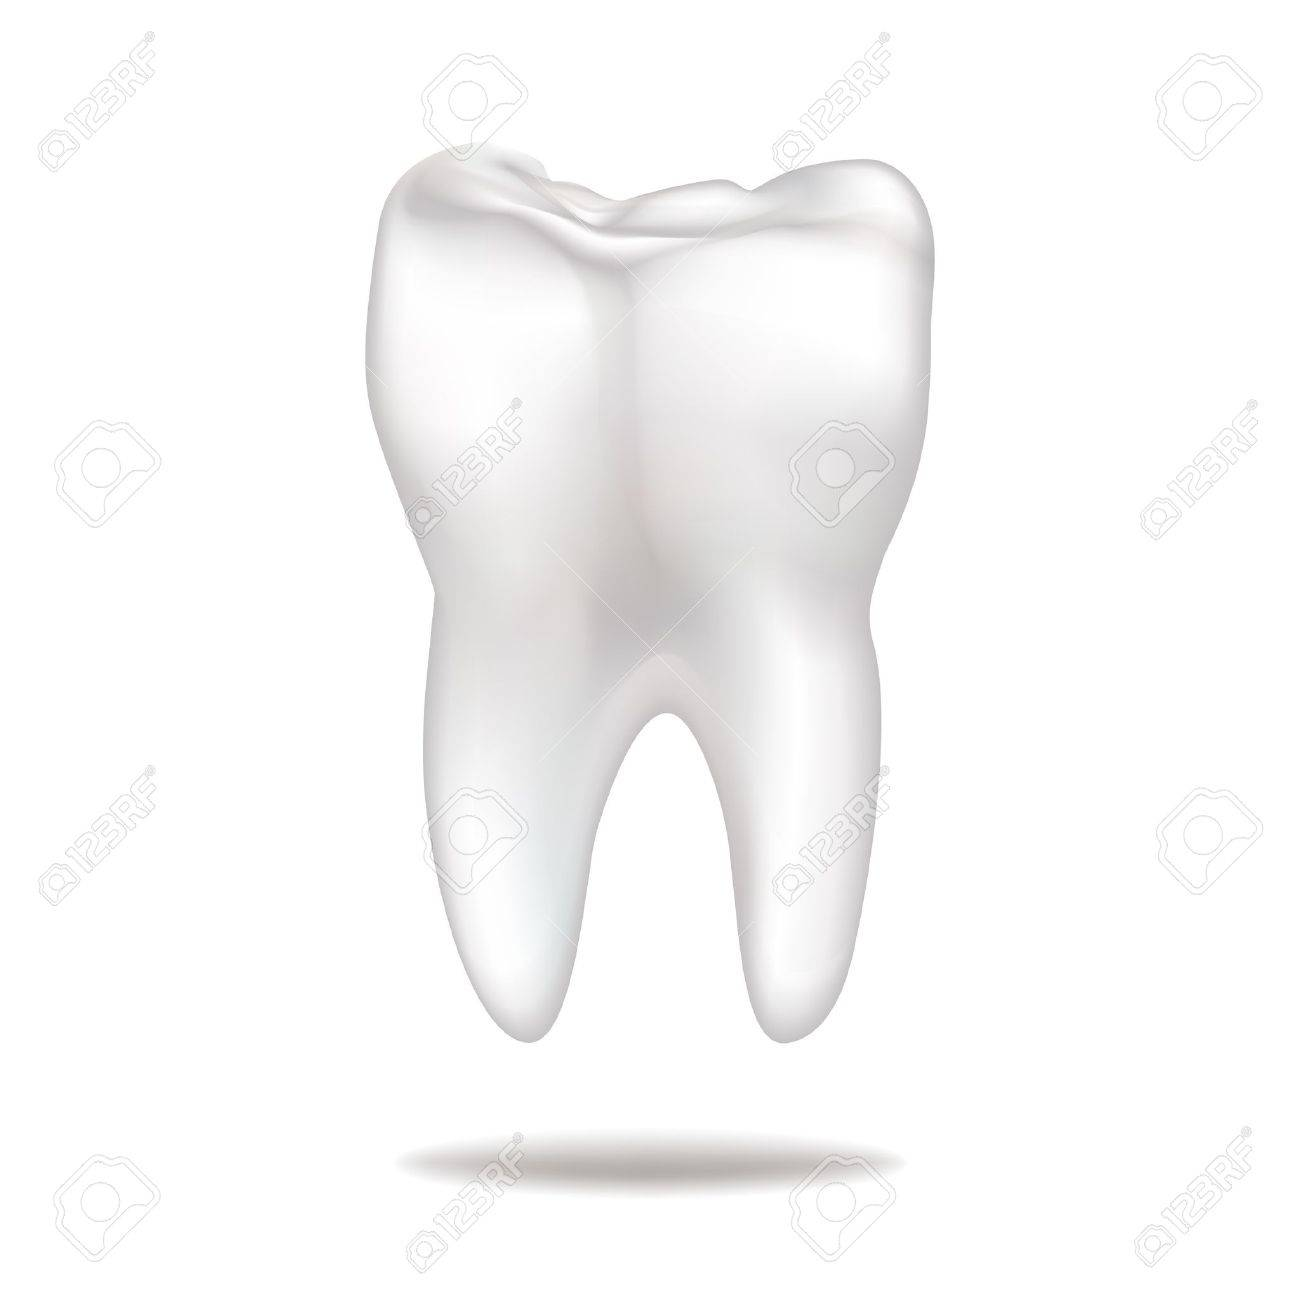 Tooth Stock Vector - 17280111